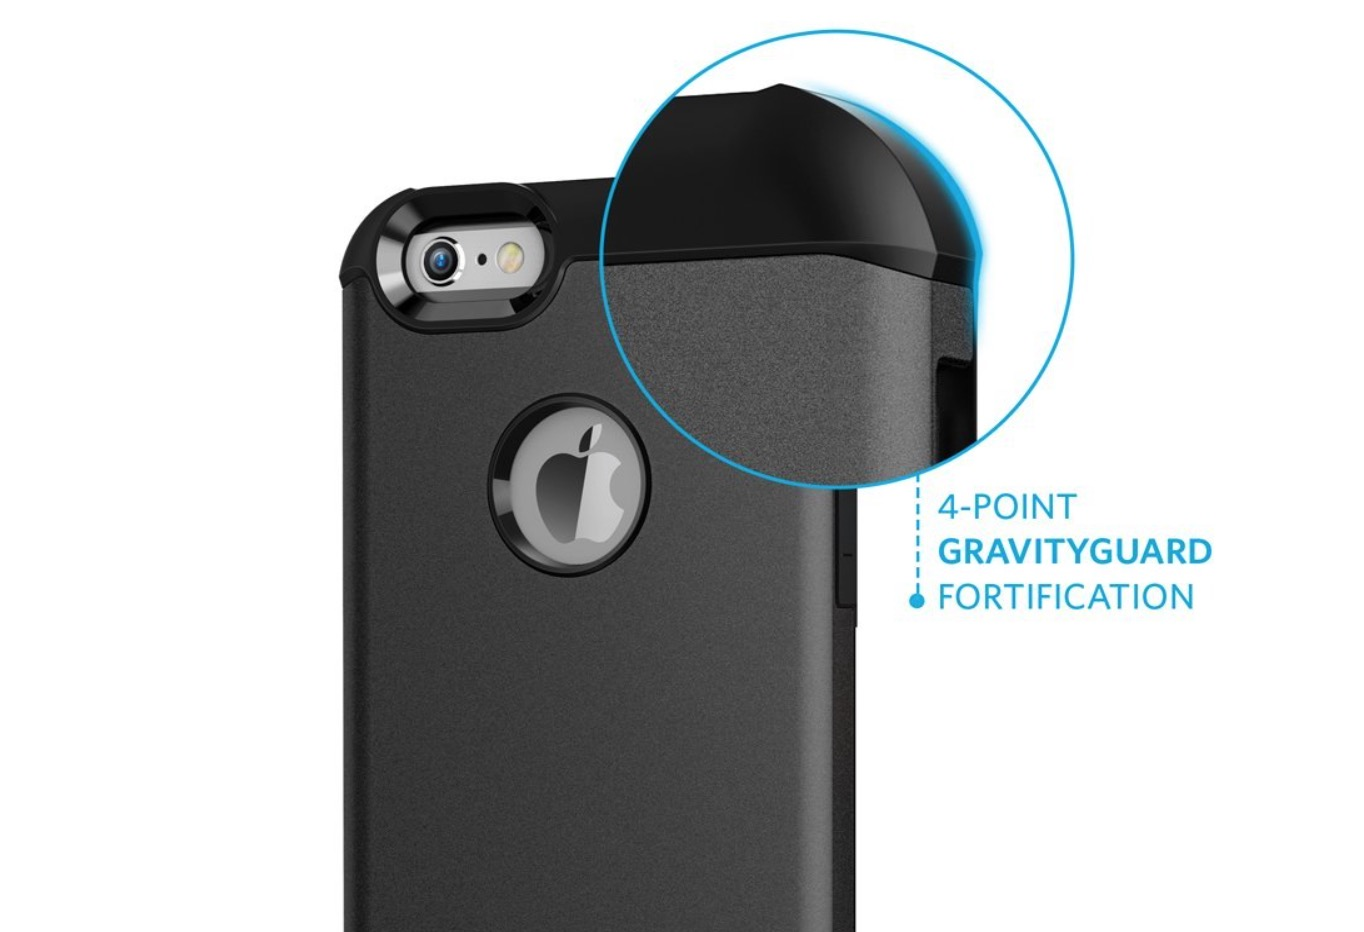 custodia iphone 6 plus anker